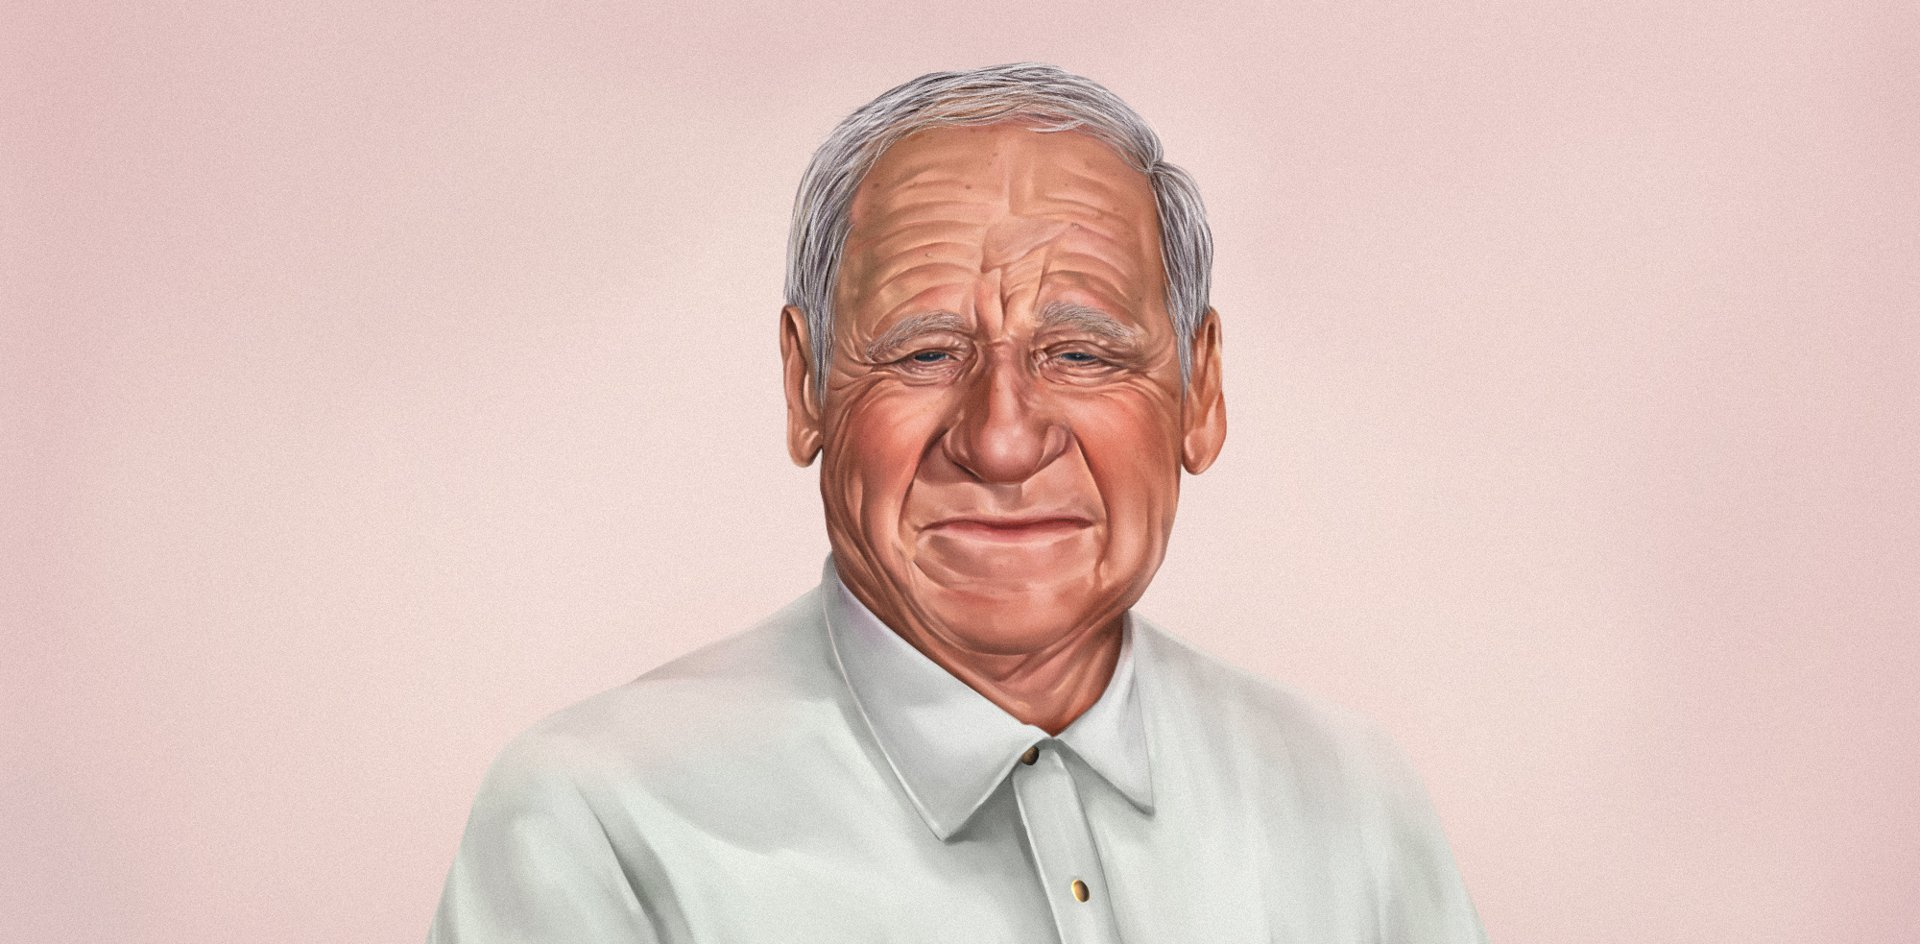 mel brooks portrait of